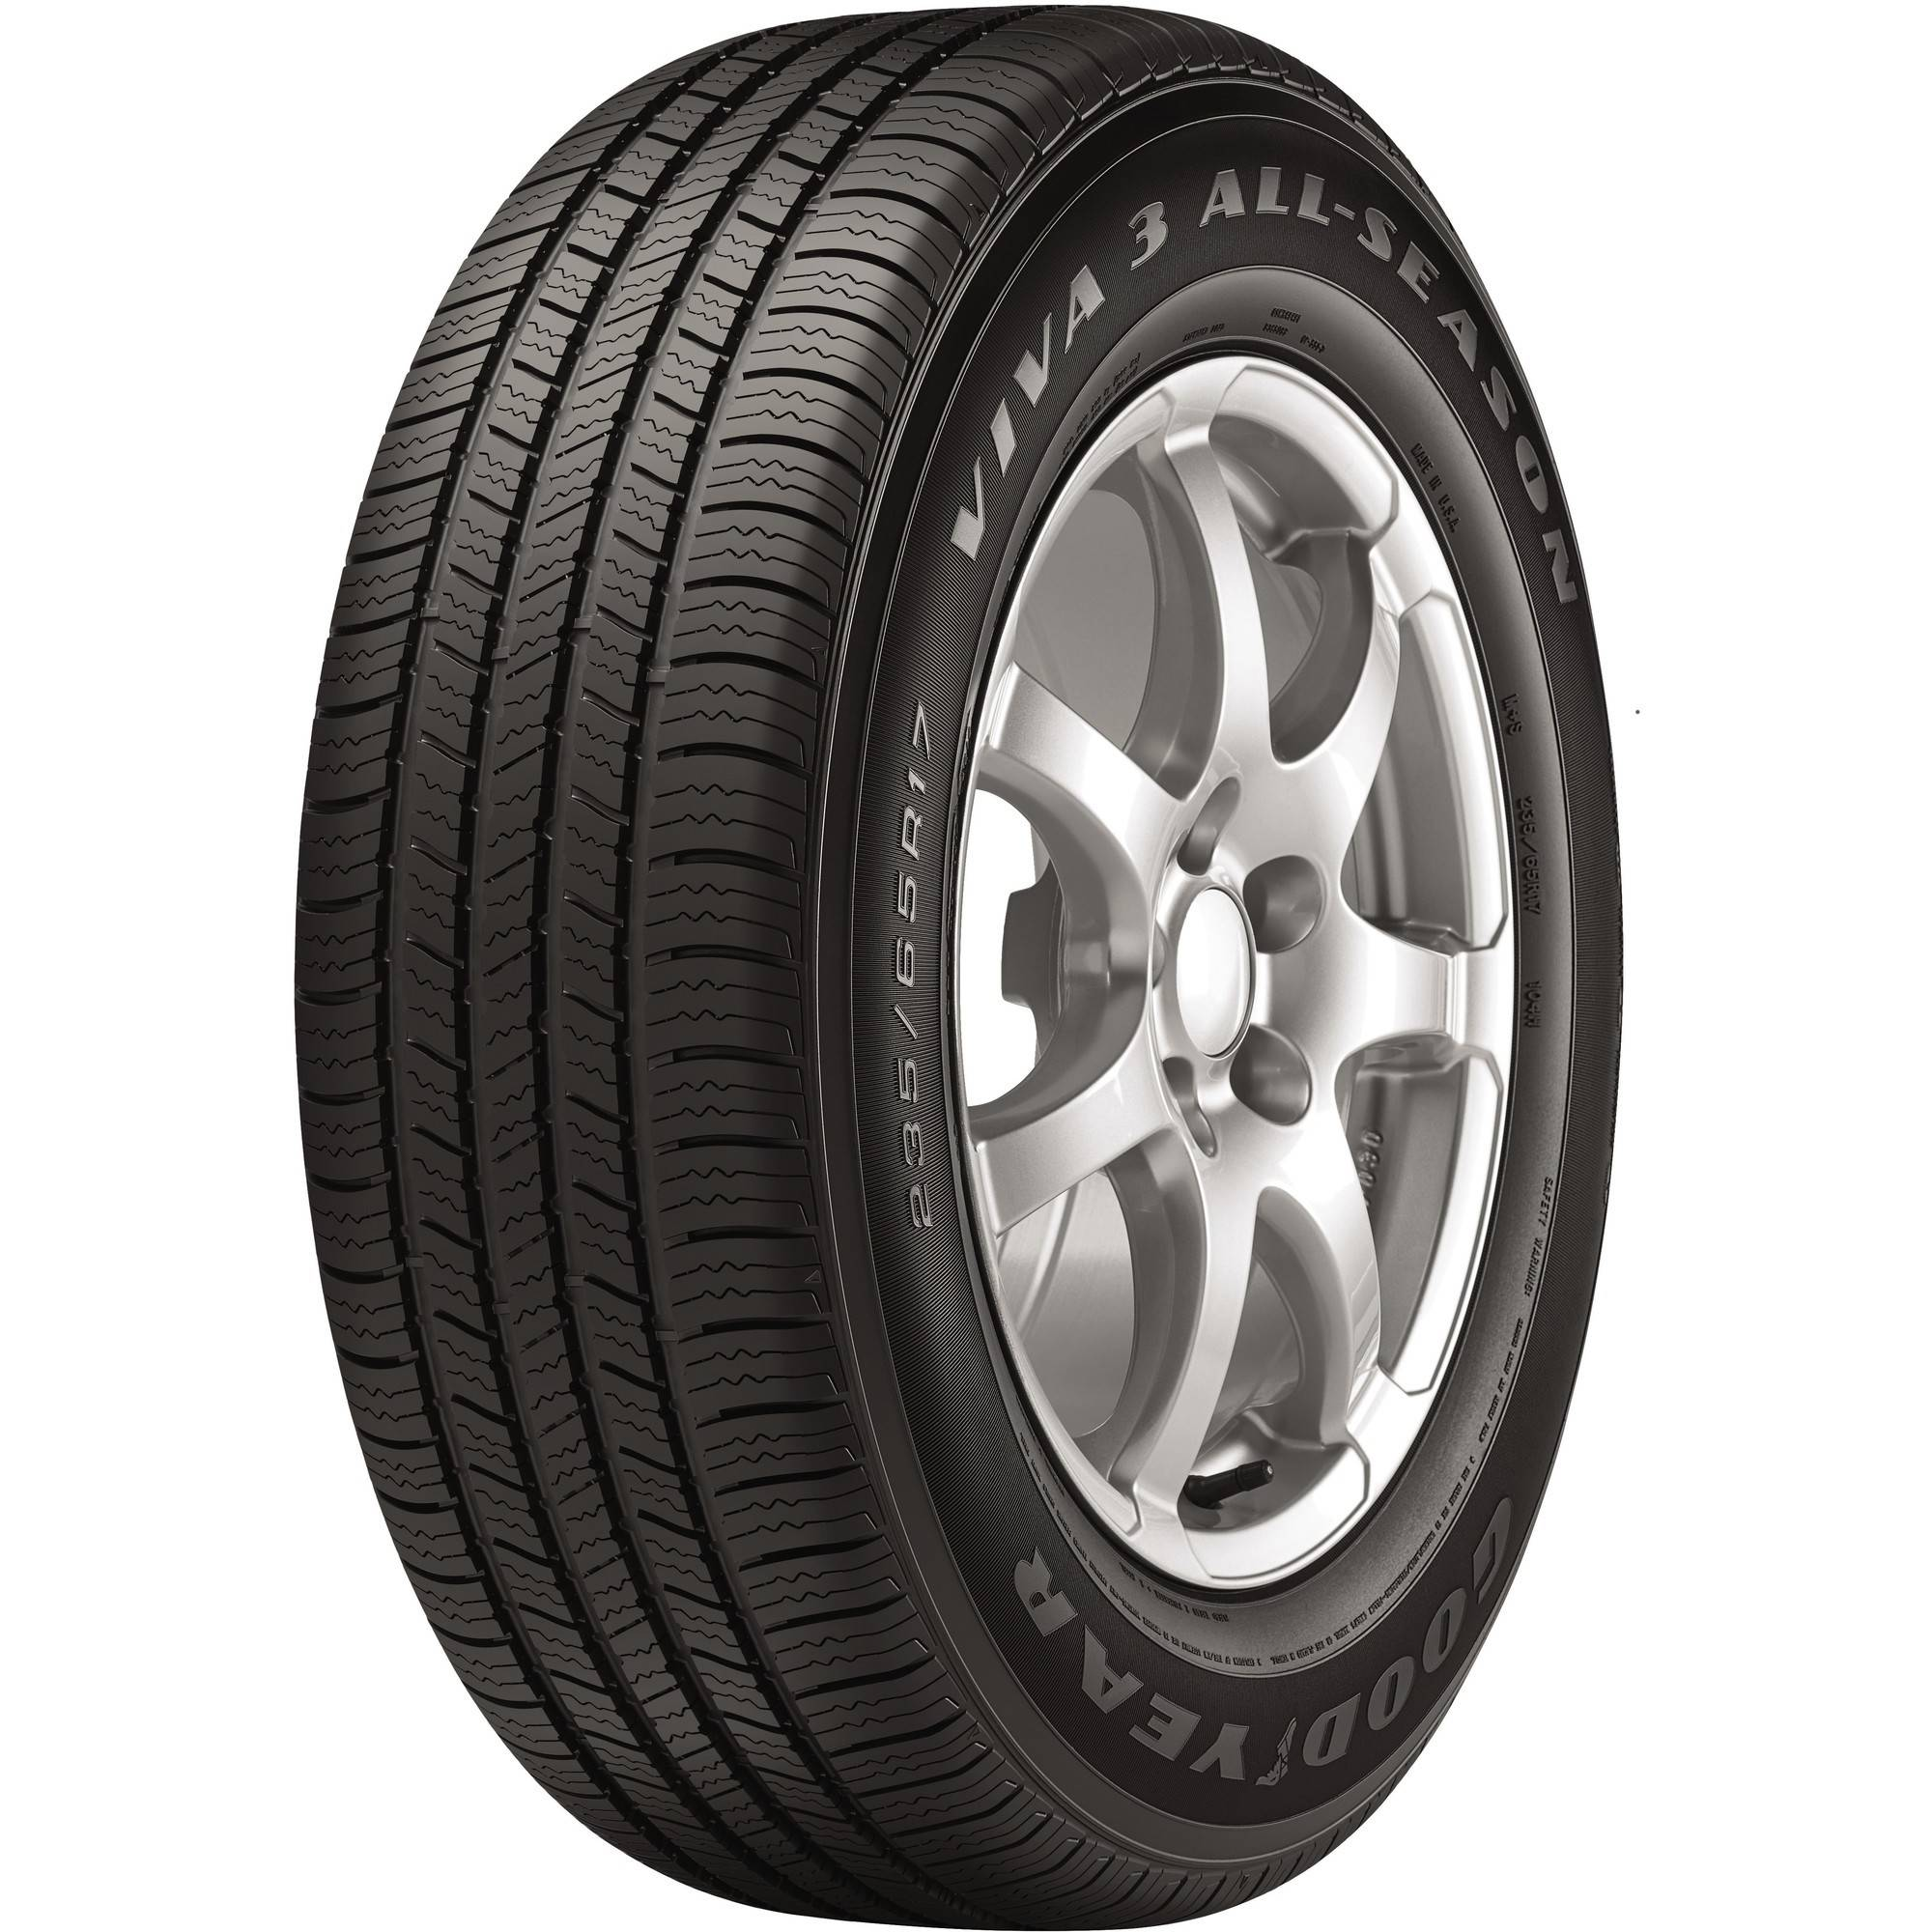 goodyear viva 3 all season tire 21560r16 95t